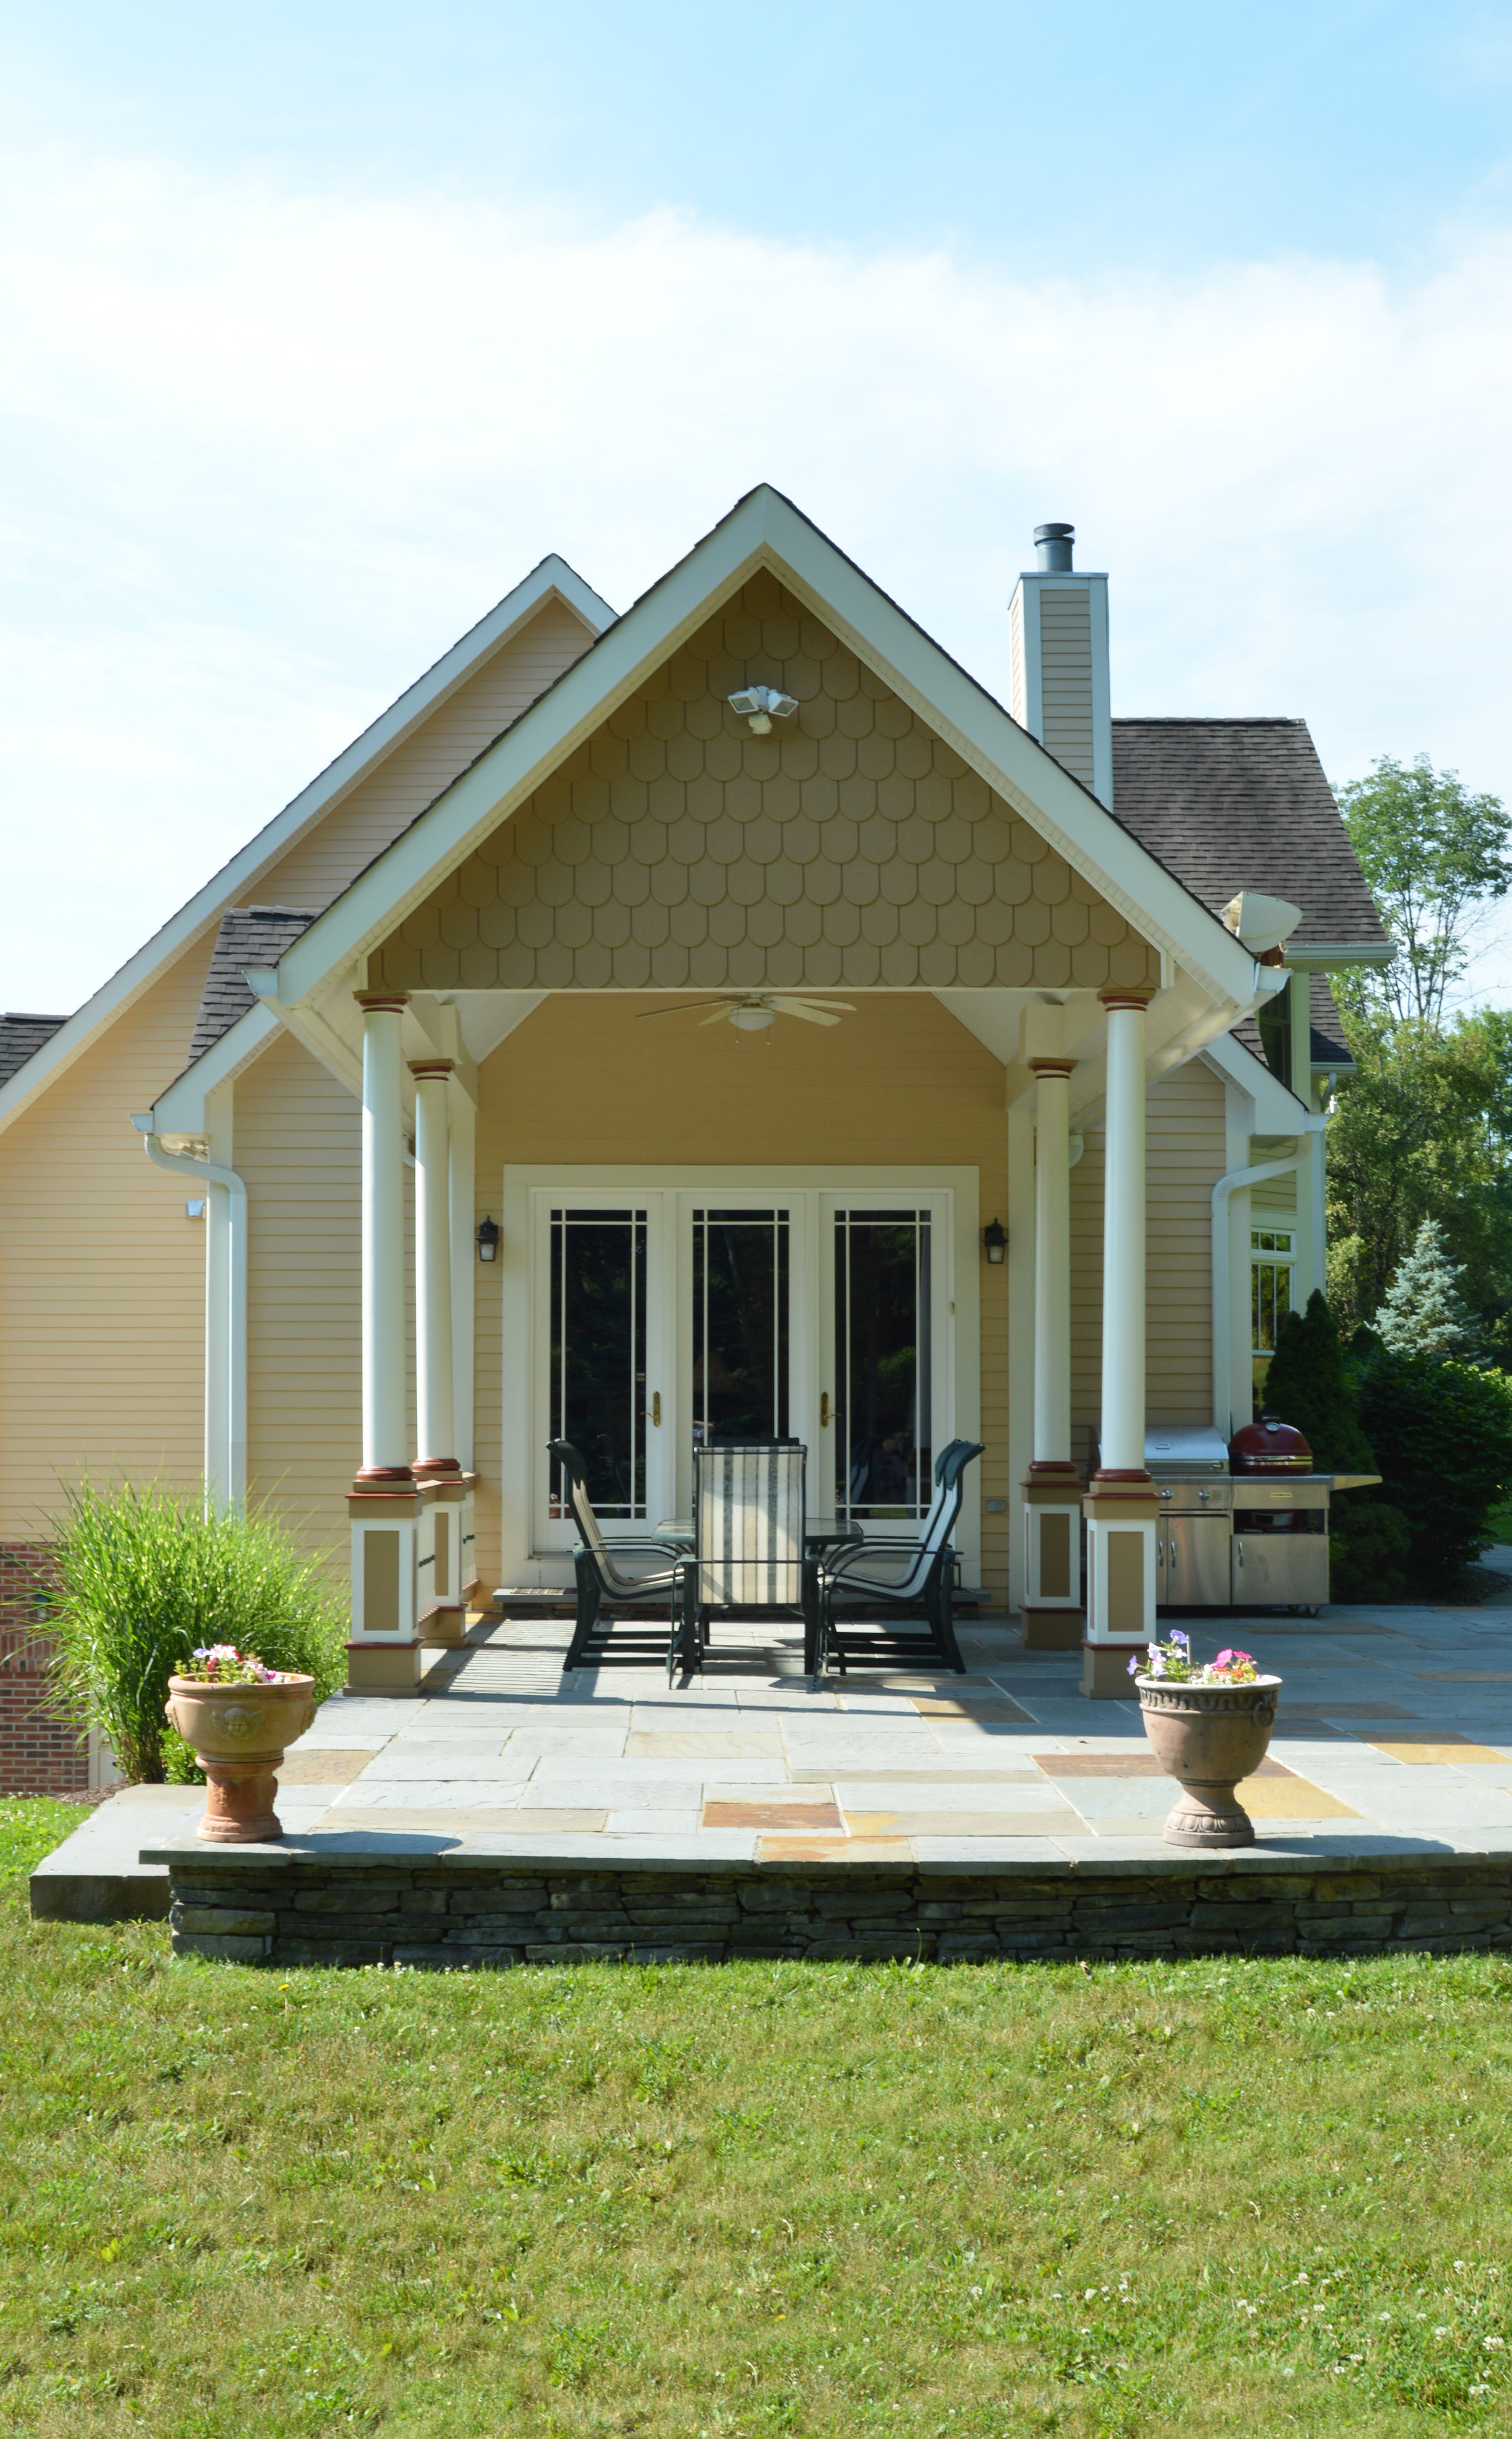 5 Best Materials for your Bethel NY Winter Patio